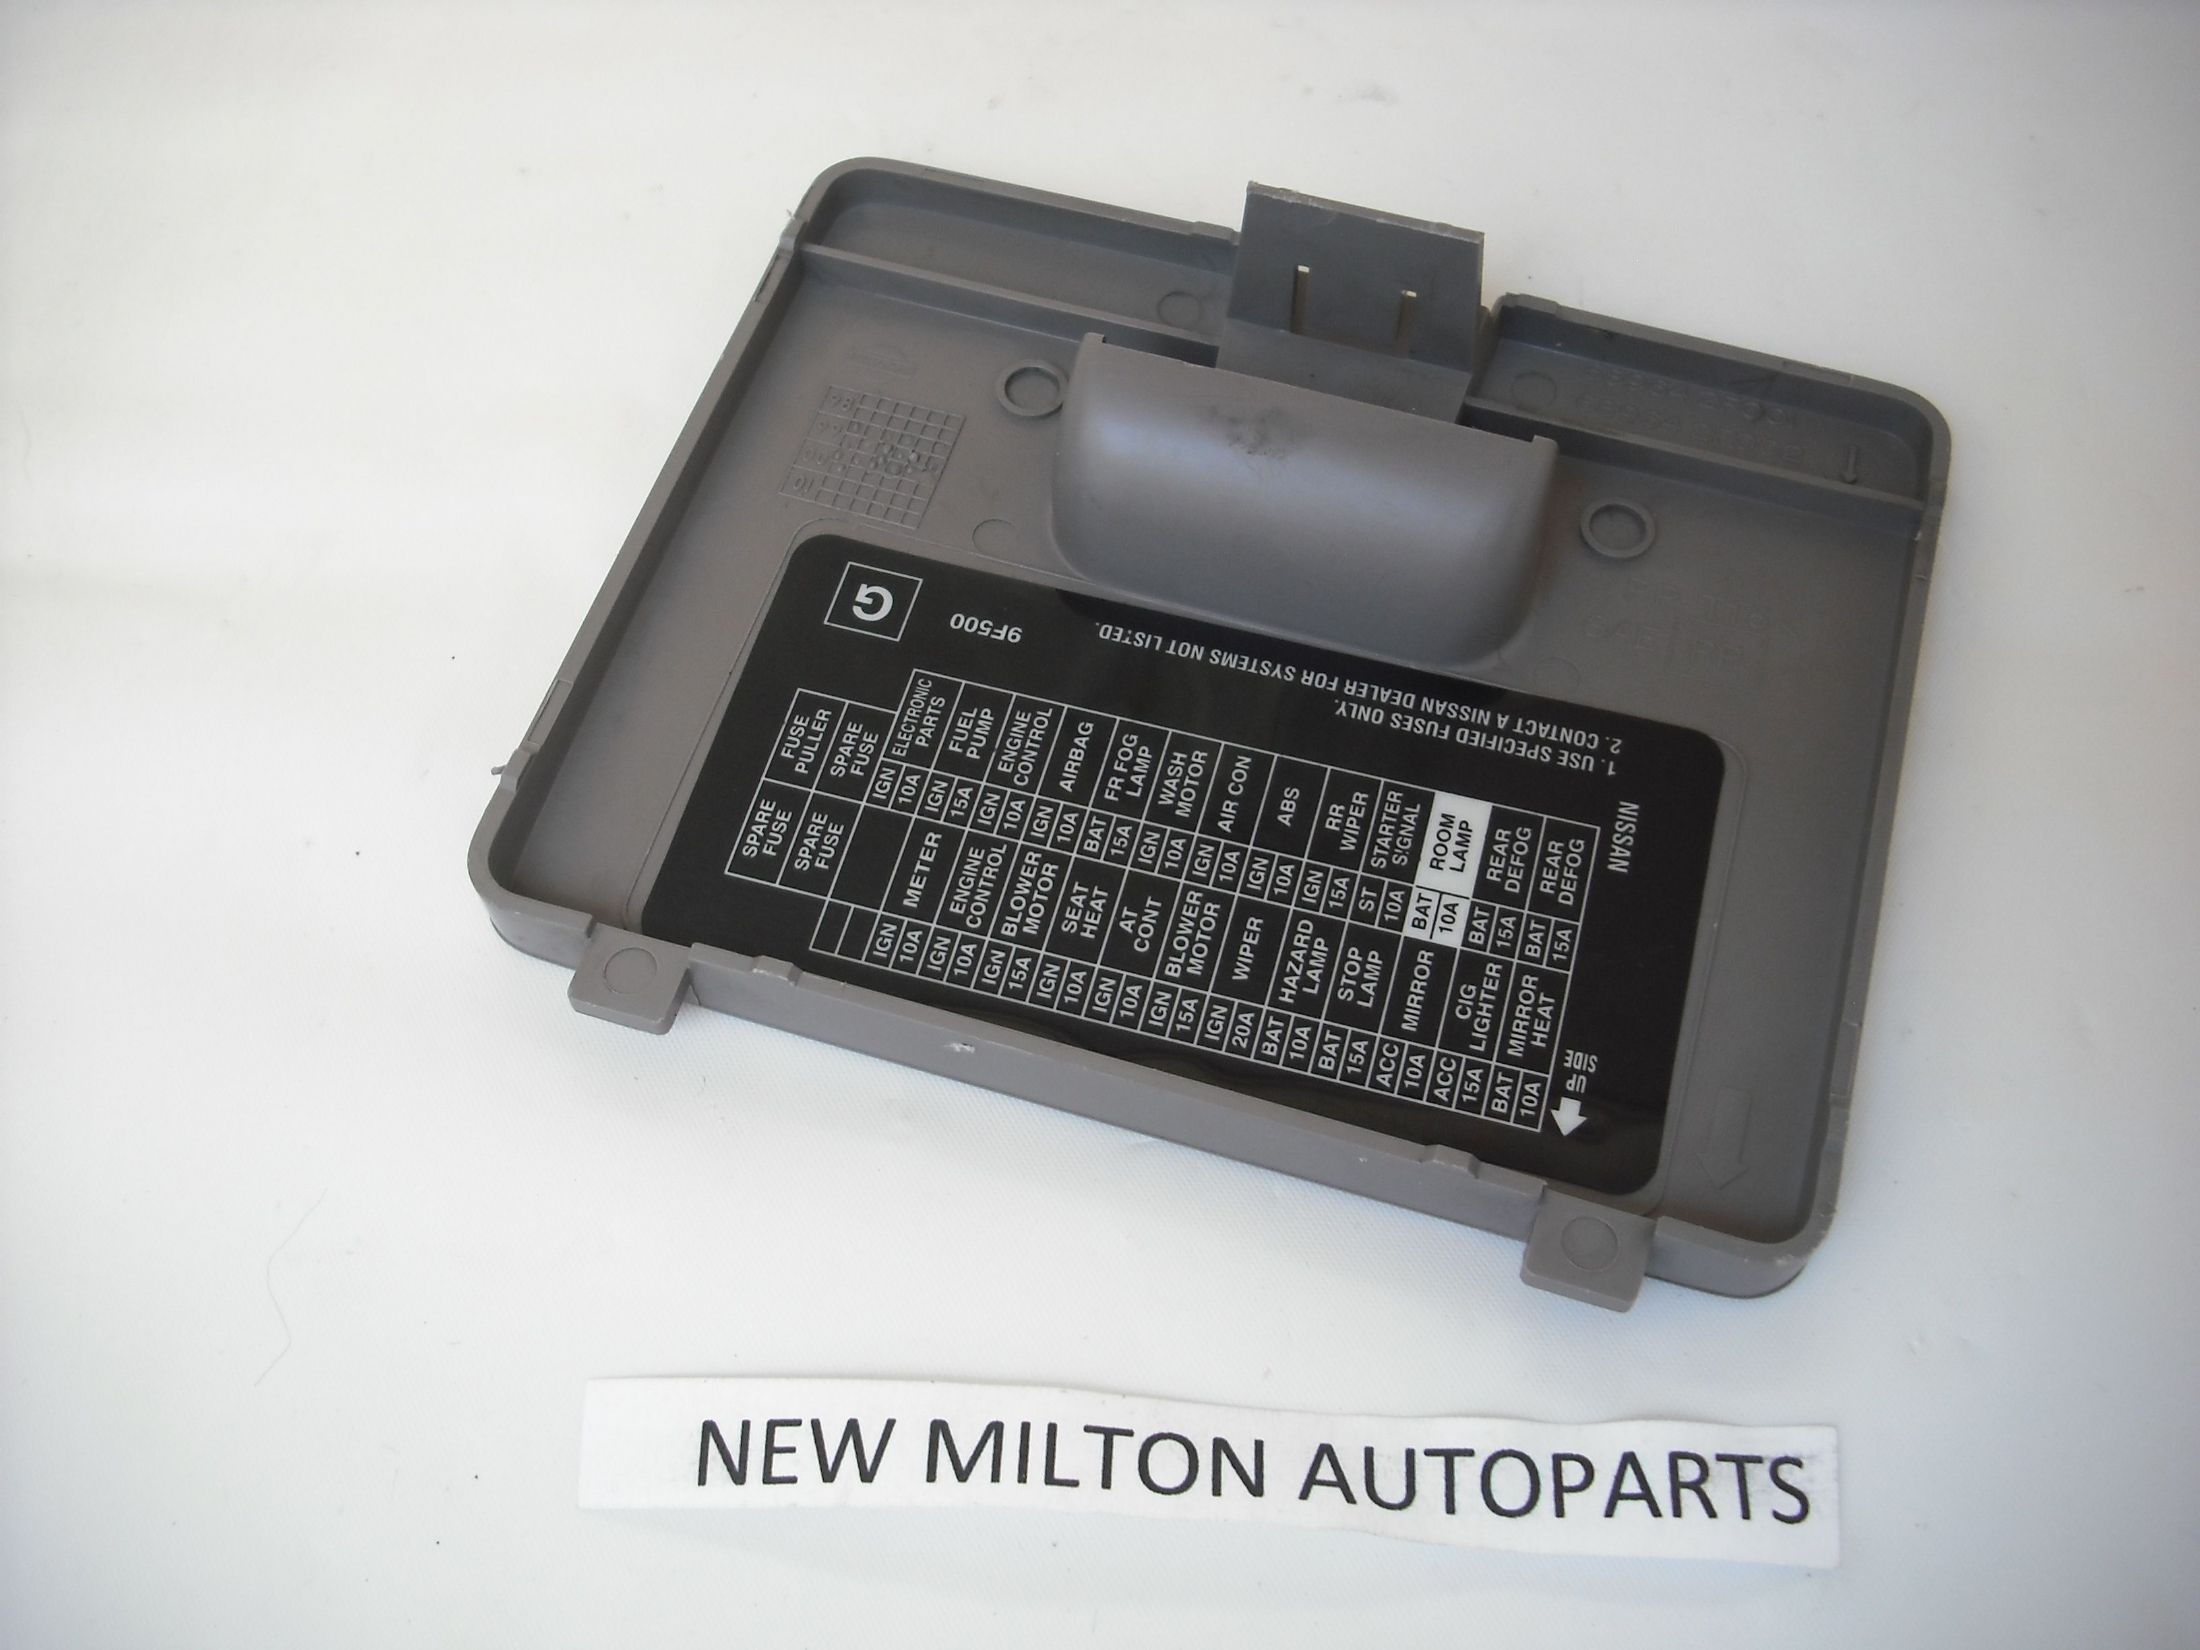 nissan primera p11 1996 2002 interior dash fuse box cover [2] 4243 p primera p11 1996 2002 interior dash fuse box cover nissan primera p11 fuse box layout at mifinder.co